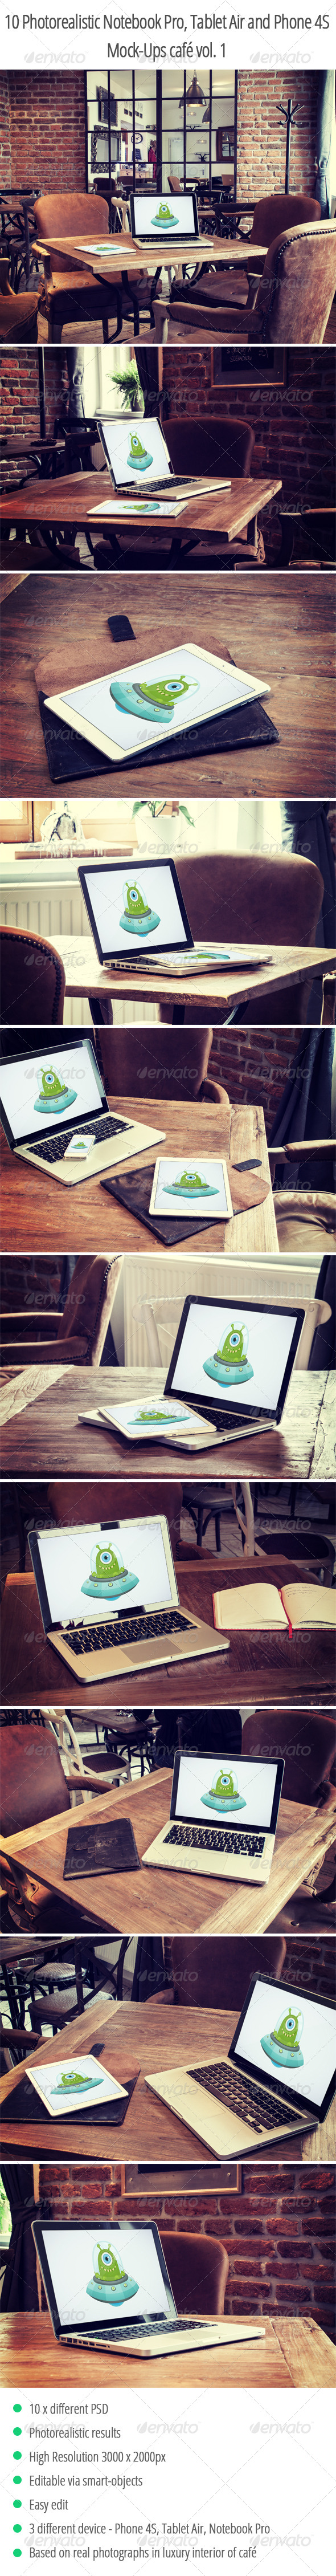 10 Photorealistic Device Mock-Ups in Cafe Vol.1 - Displays Product Mock-Ups